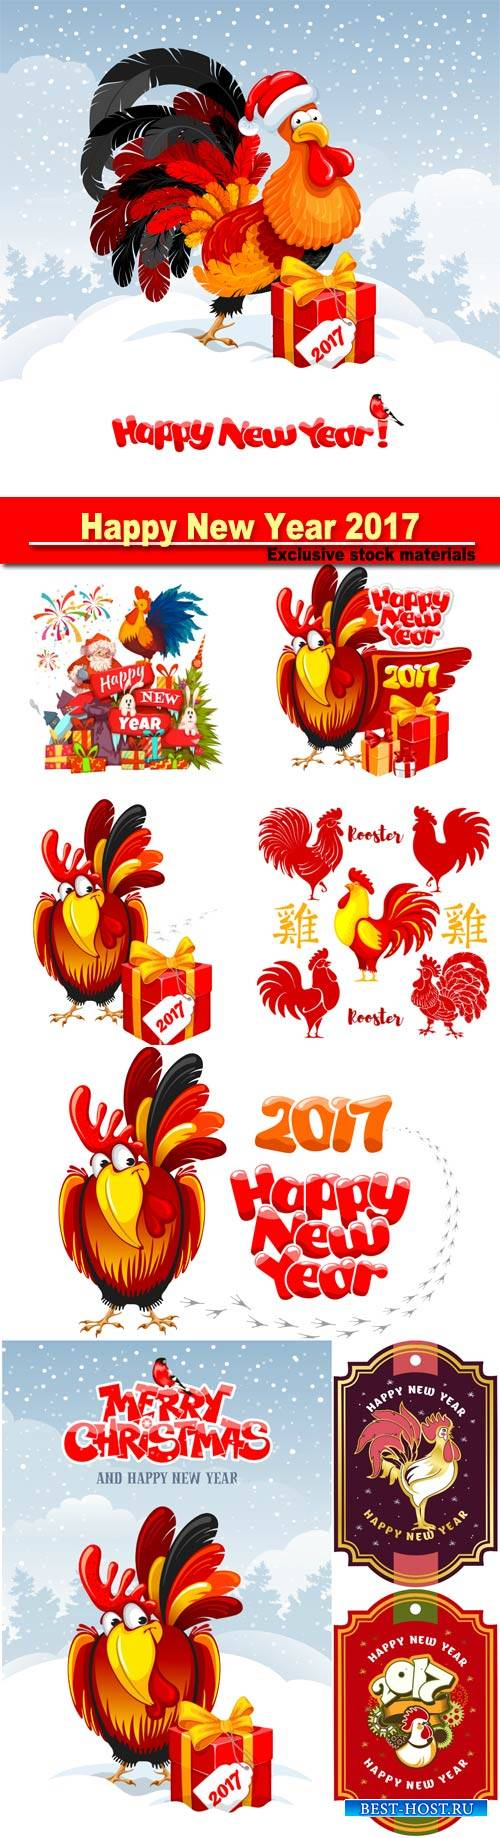 Happy New Year 2017 banner with Santa Claus and rooster on ribbon